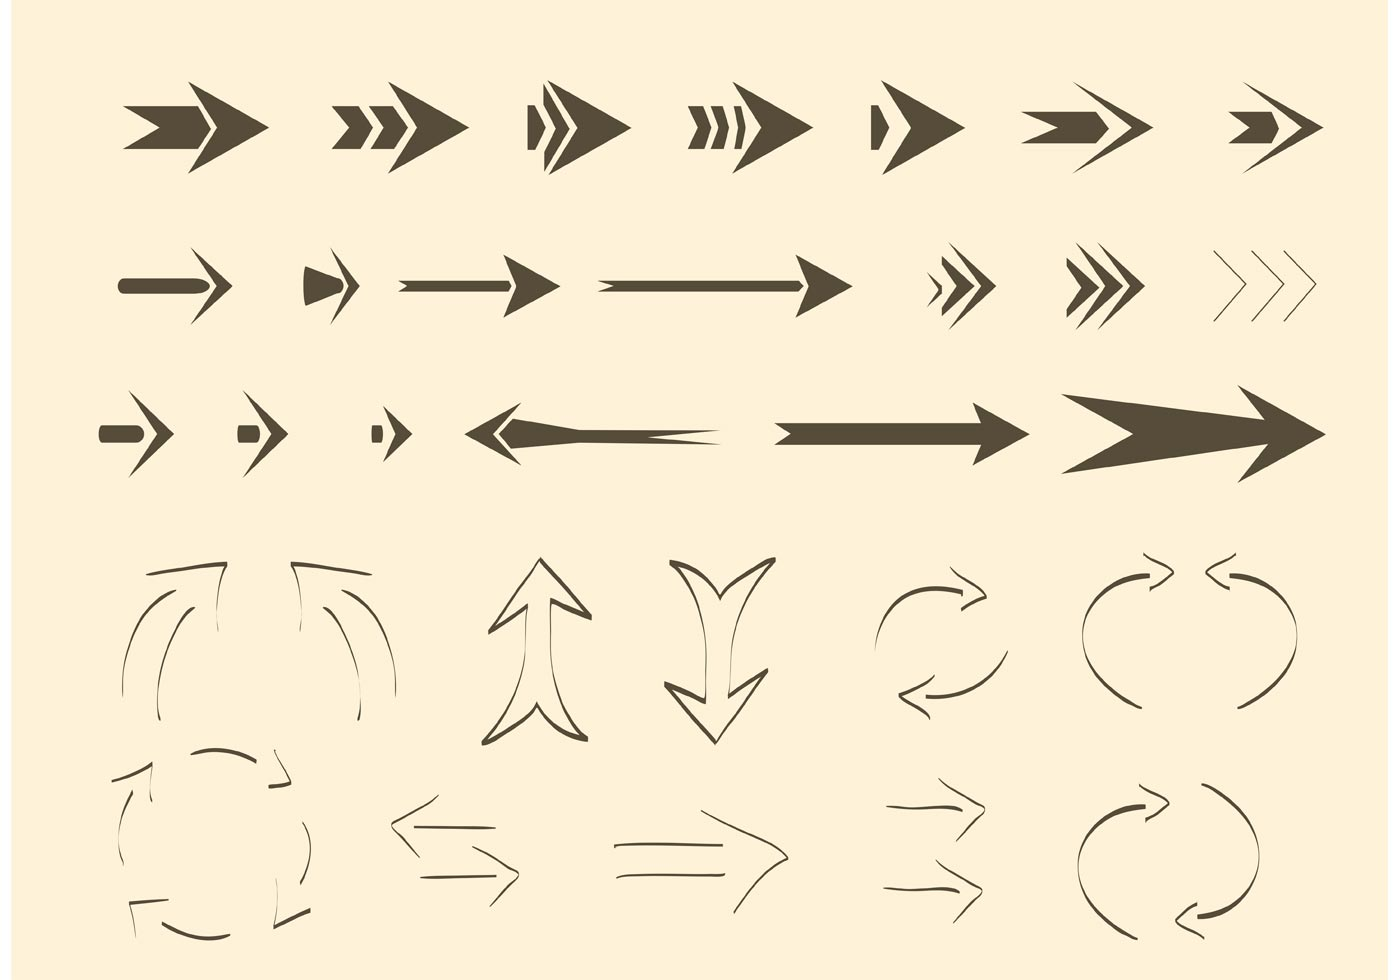 Free Vector Arrows and Lines - Download Free Vectors ...